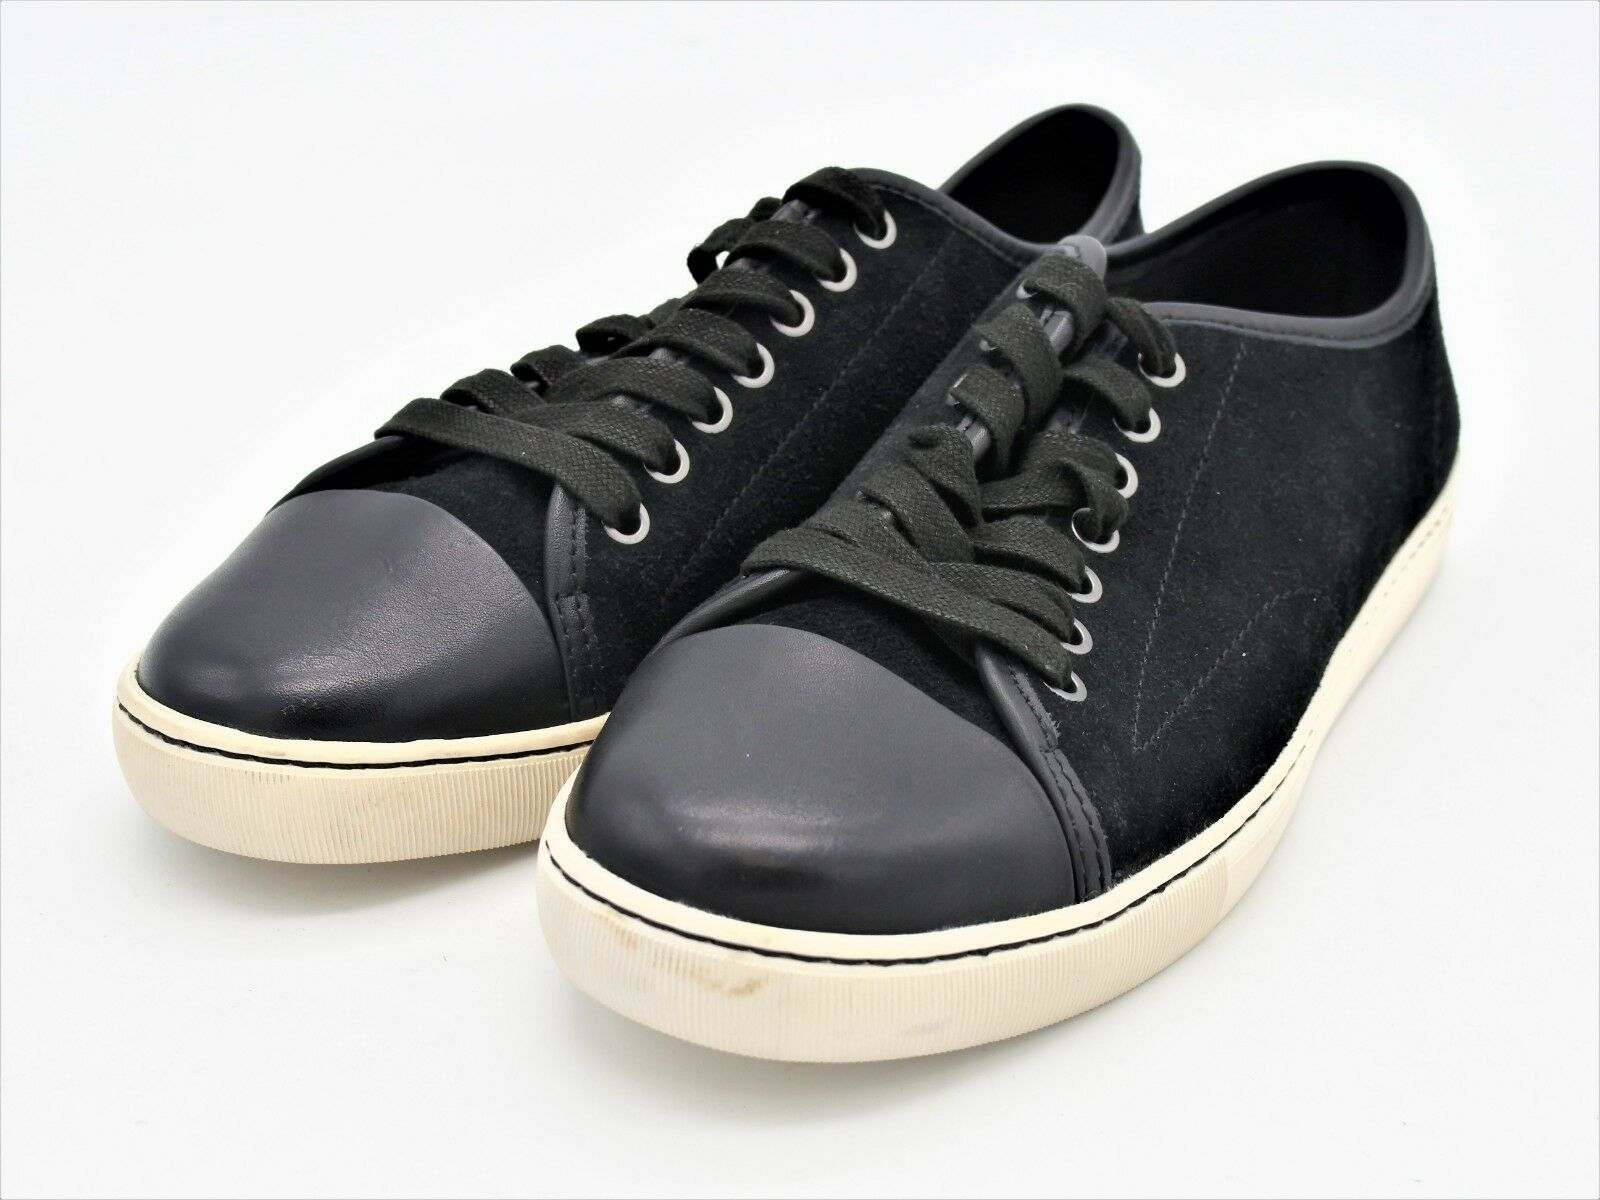 D1448L New Men's The Rail Suede bluee Low Sneakers US 8 8.5